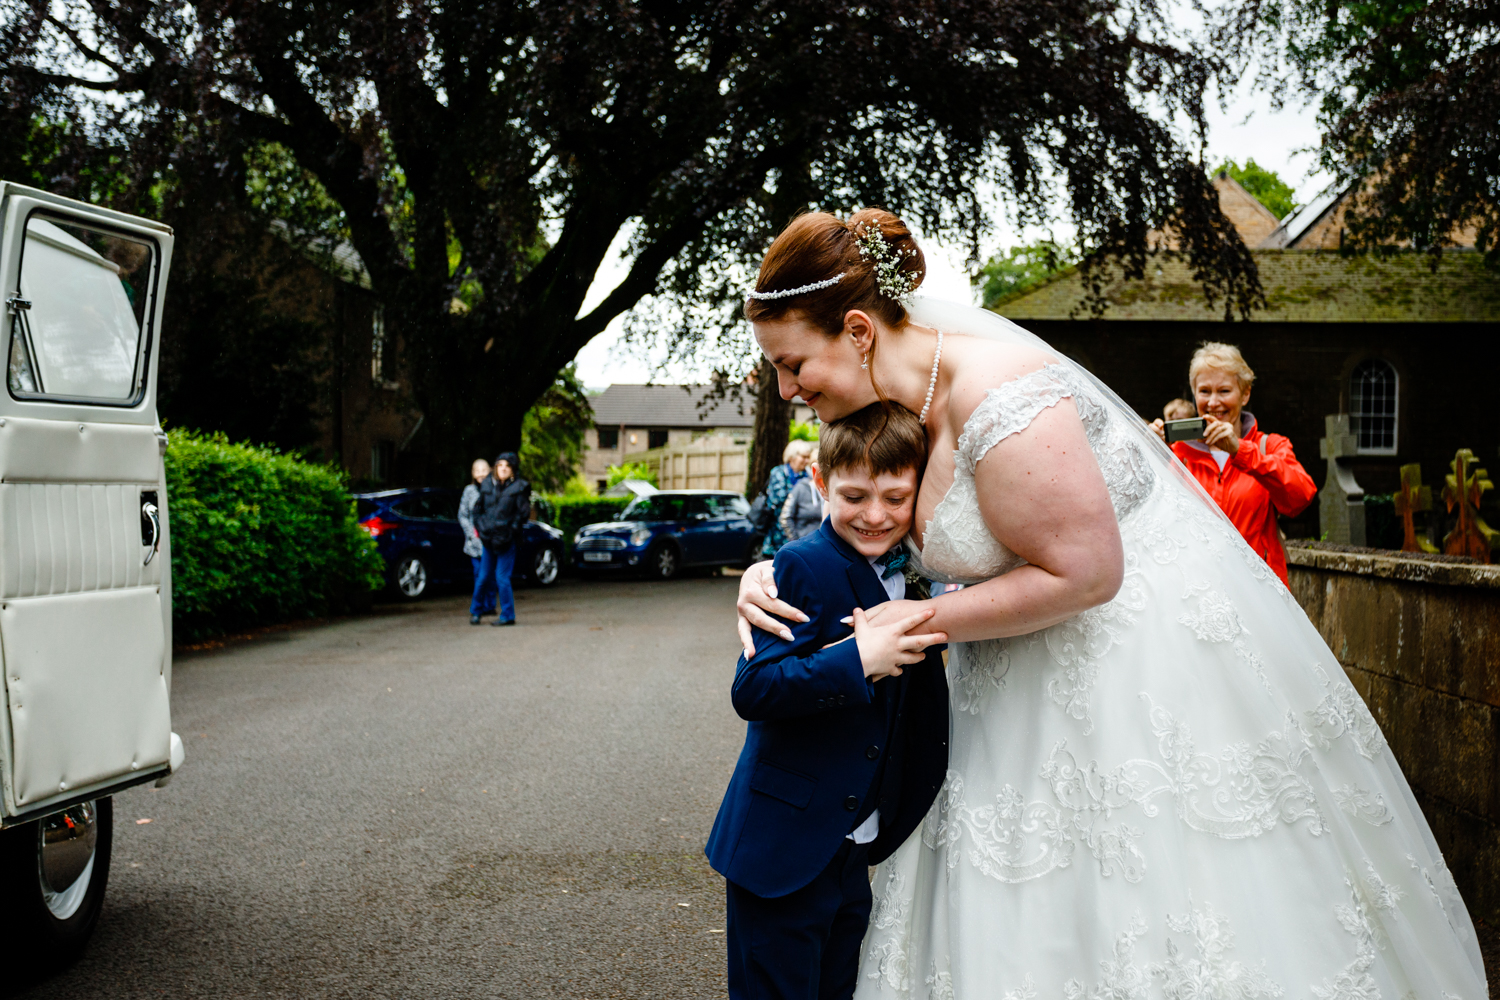 Lancashire-wedding-photographer-adele-and-alex-046.jpg